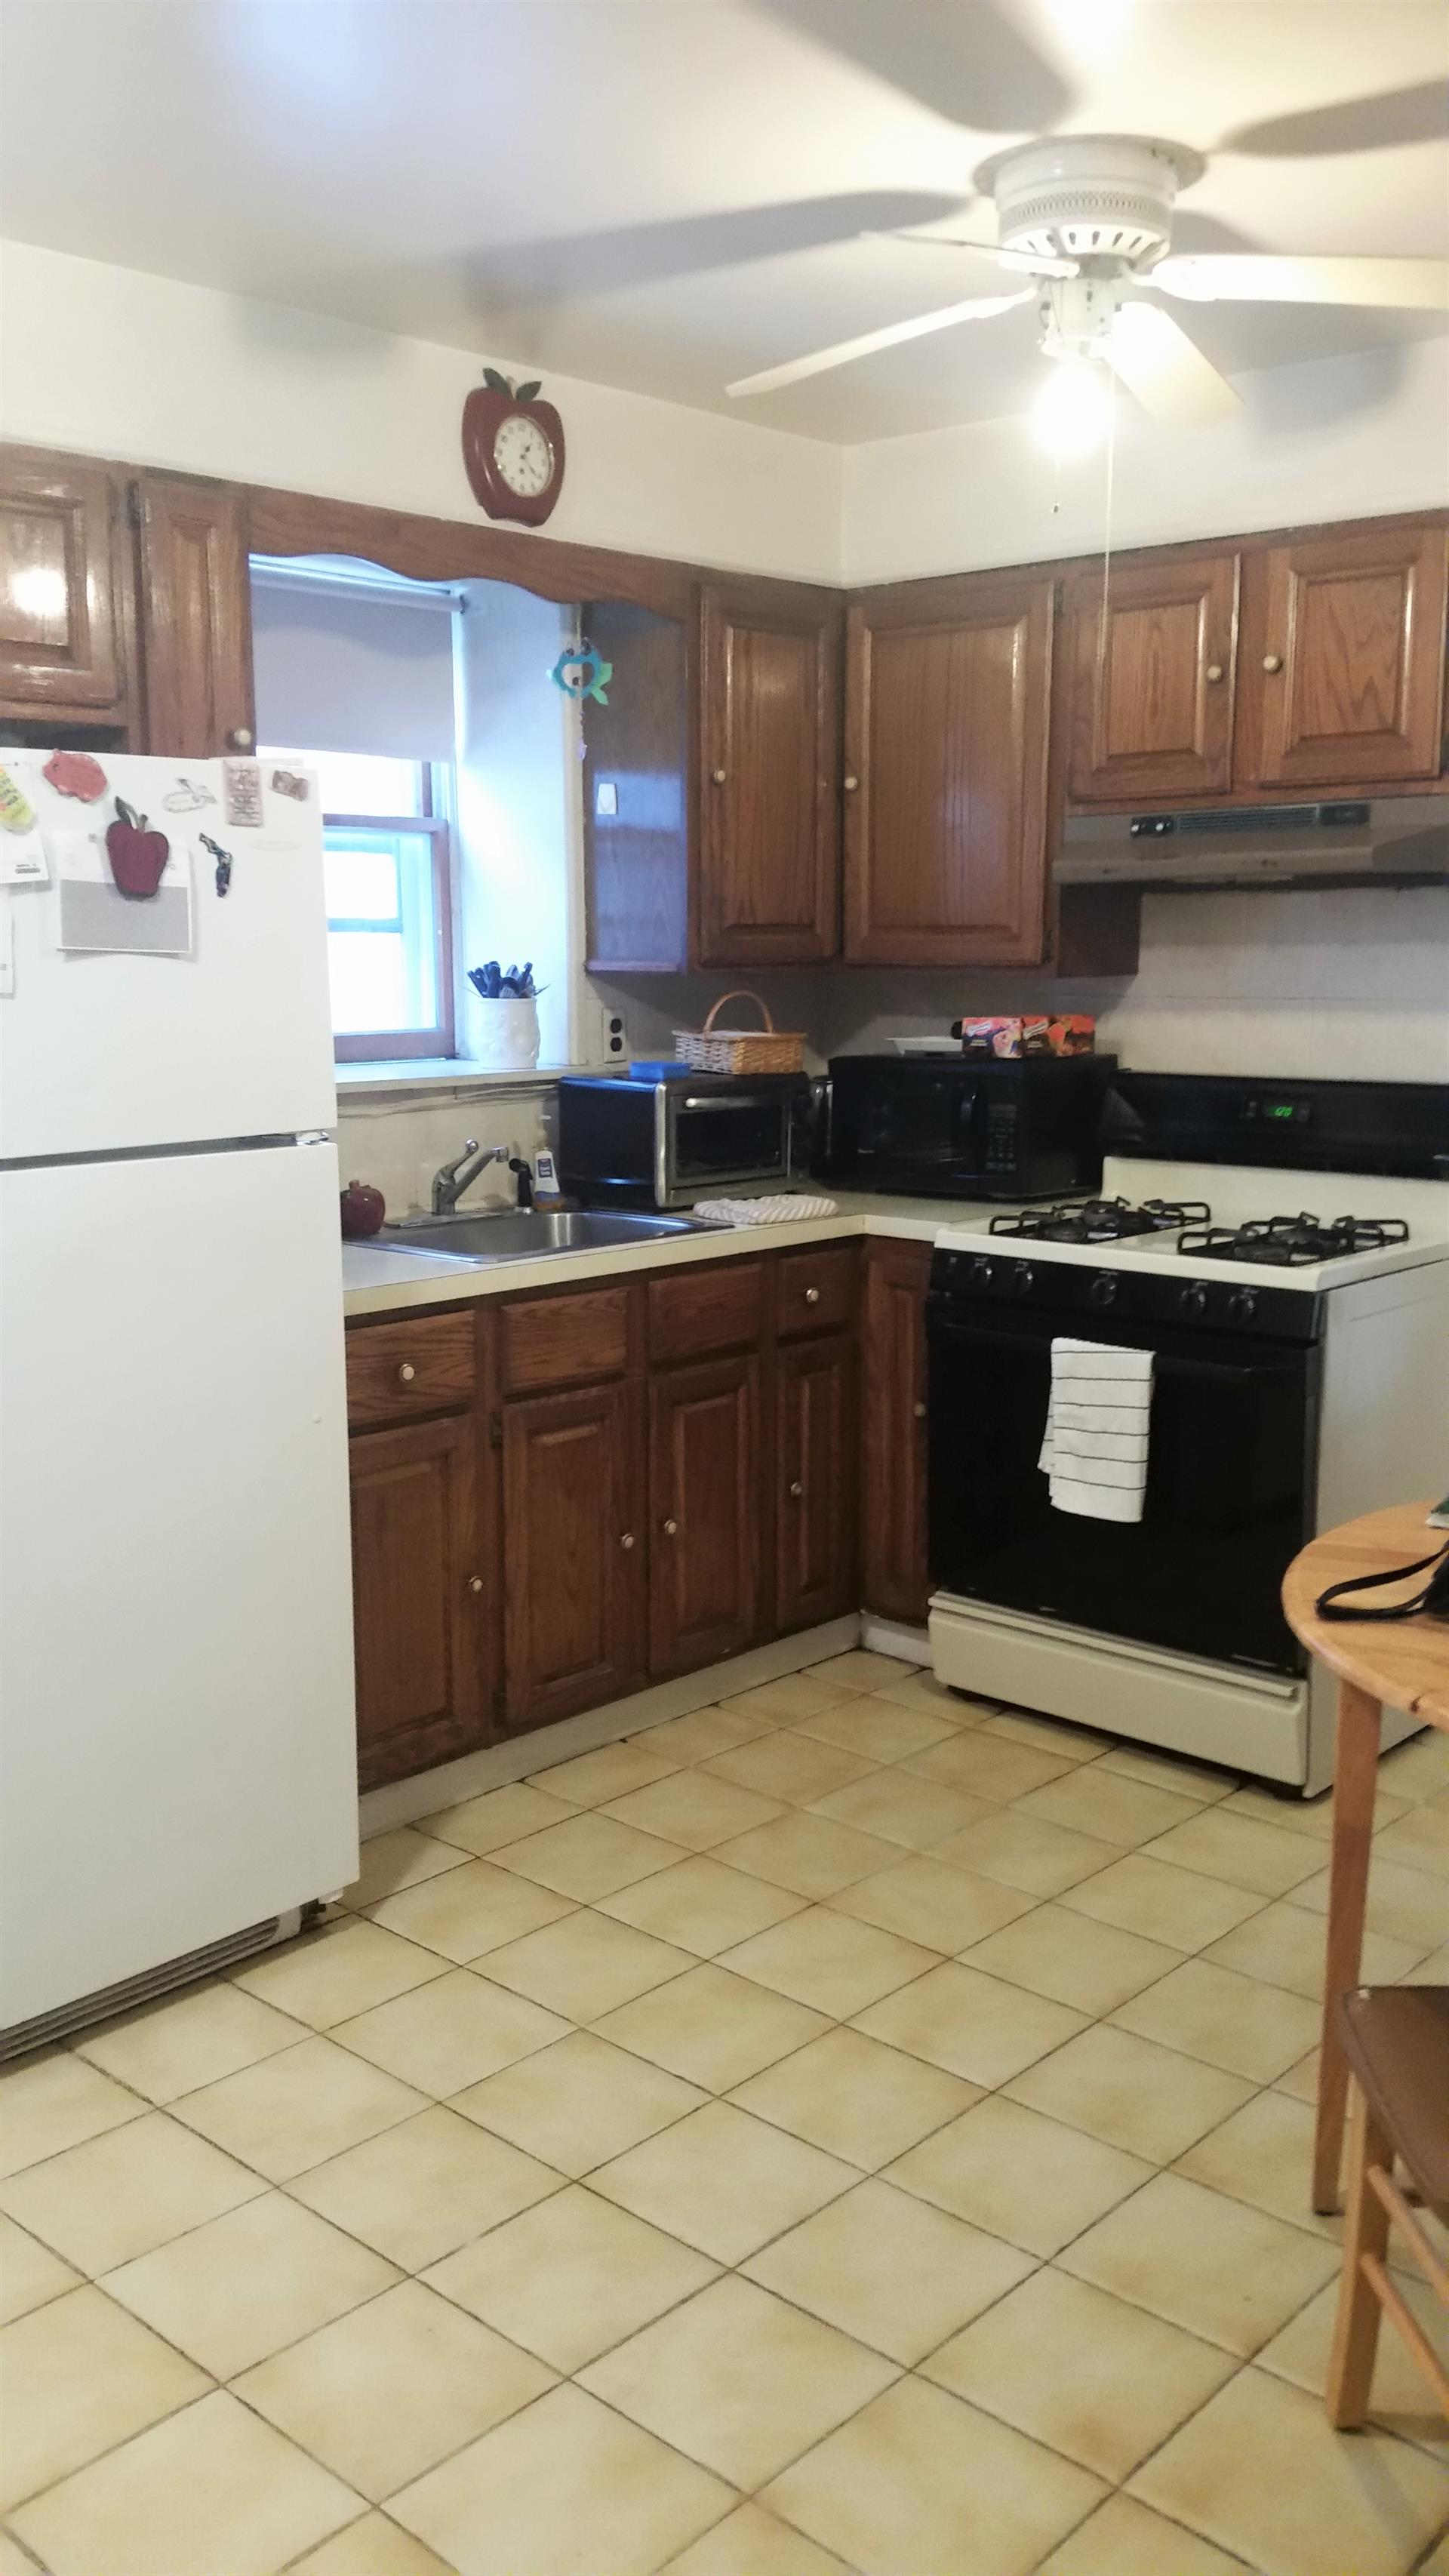 Additional photo for property listing at 1859 78th Street Bensonhurst, Brooklyn, New York United States